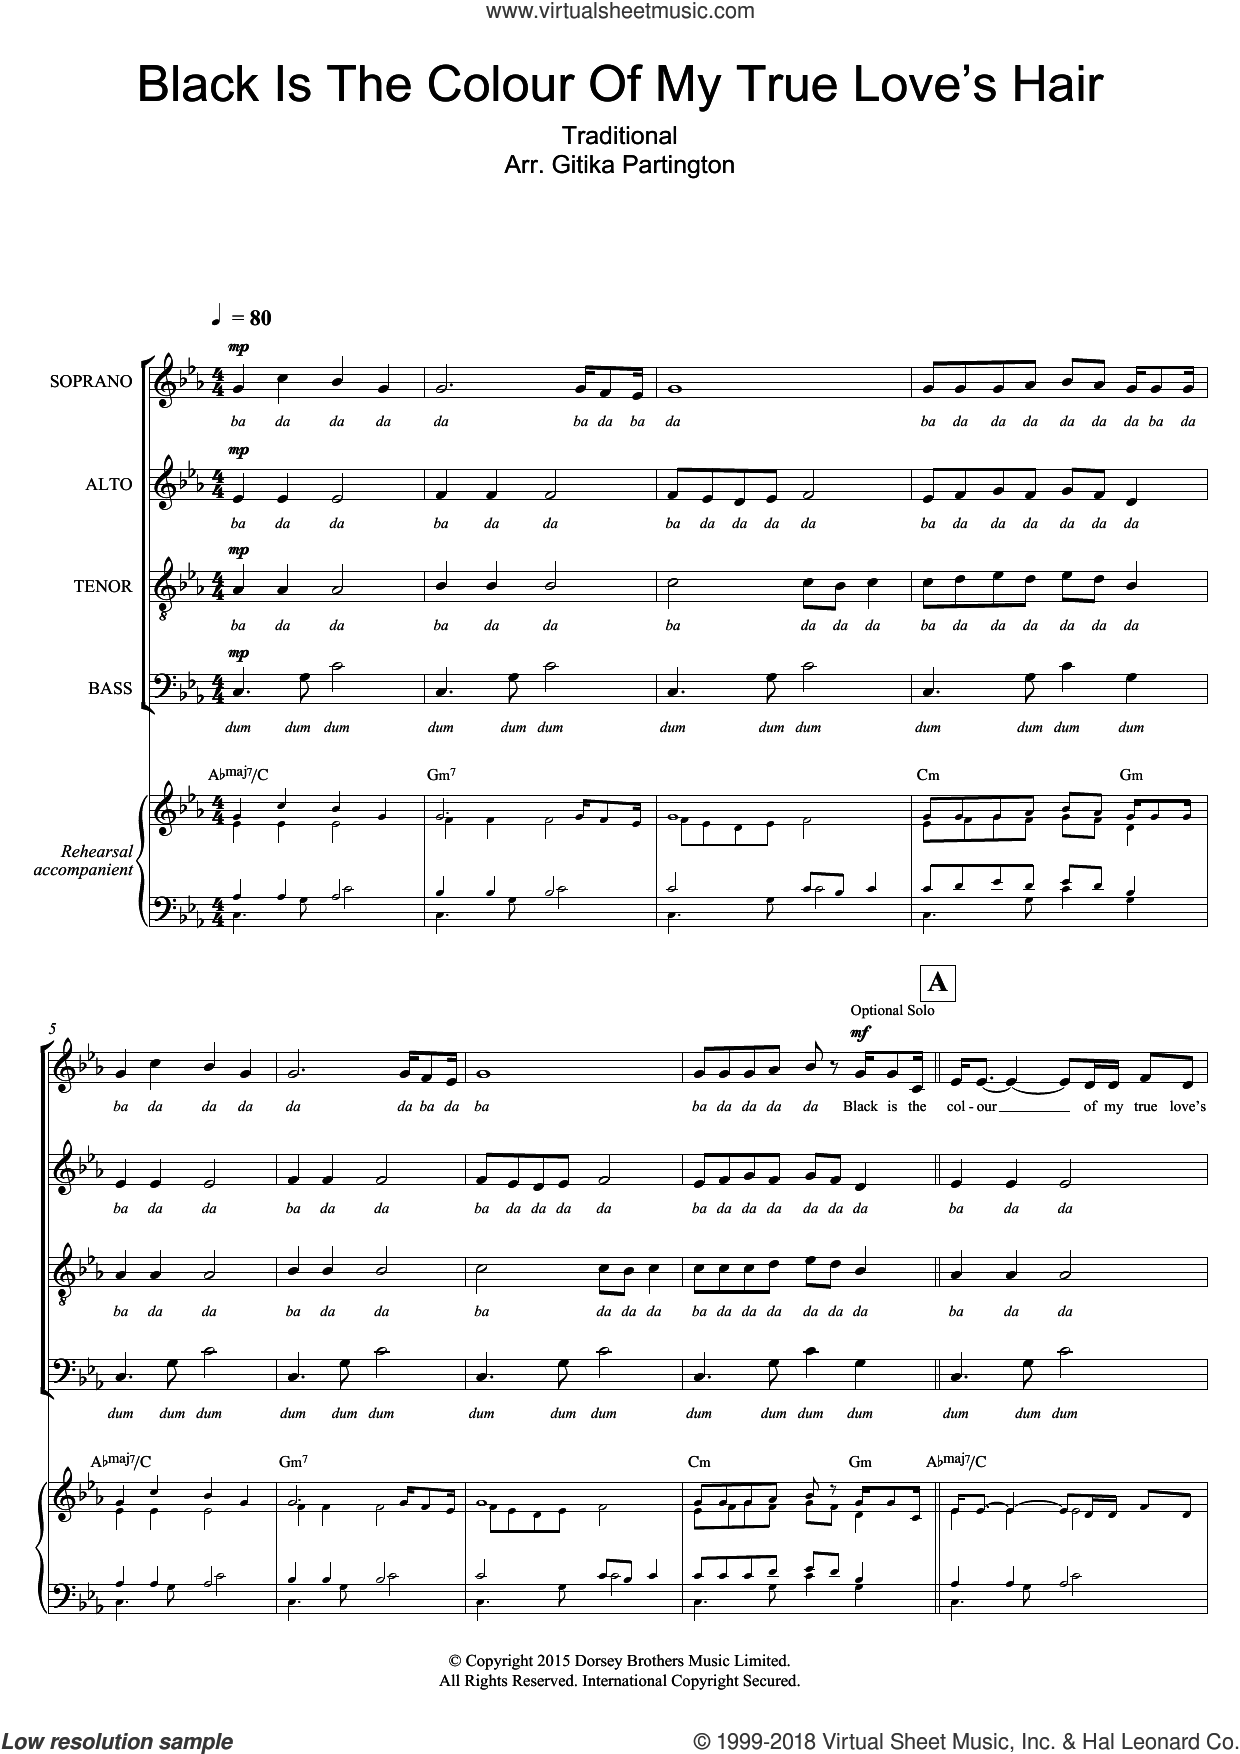 Black Is The Colour Of My True Love's Hair (Arr. Gitika Partington) sheet music for choir and piano by Traditional American Song